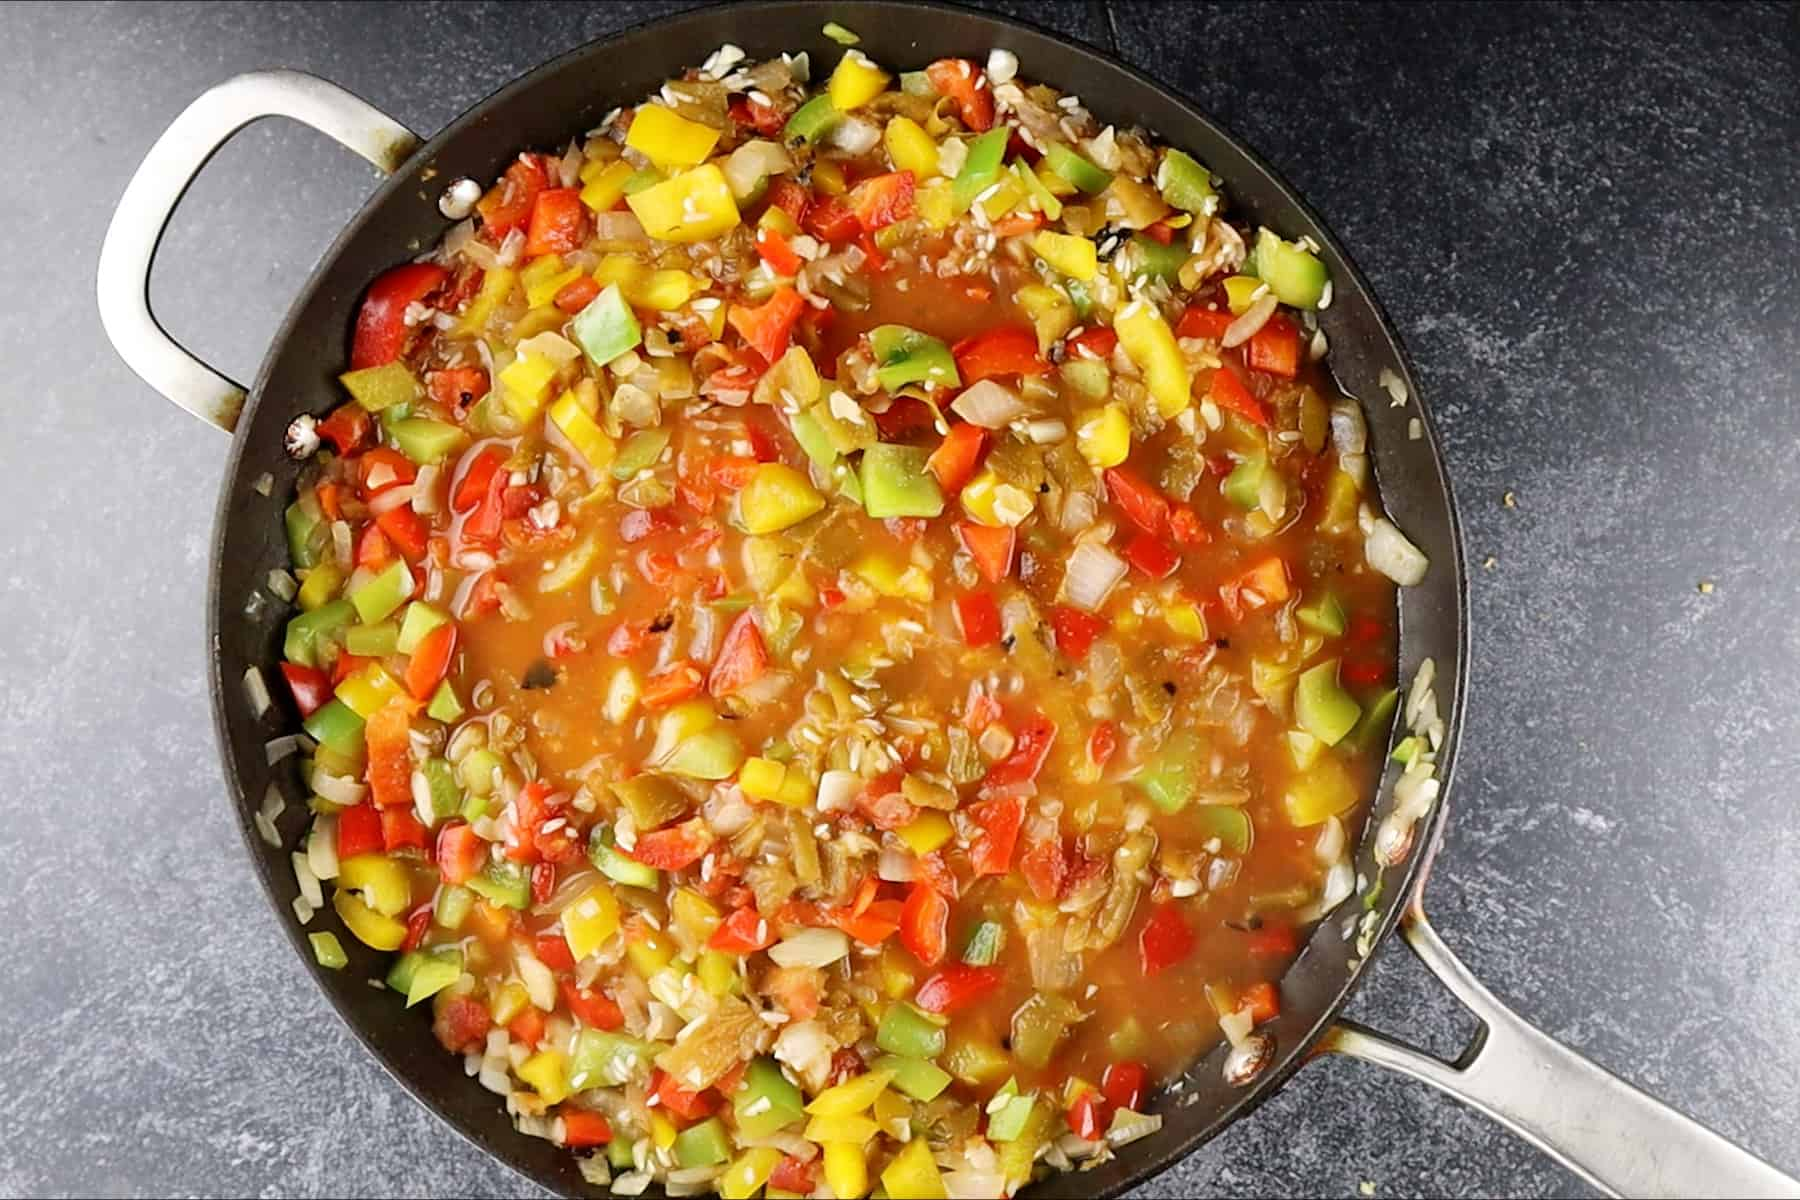 skillet with liquid simmering